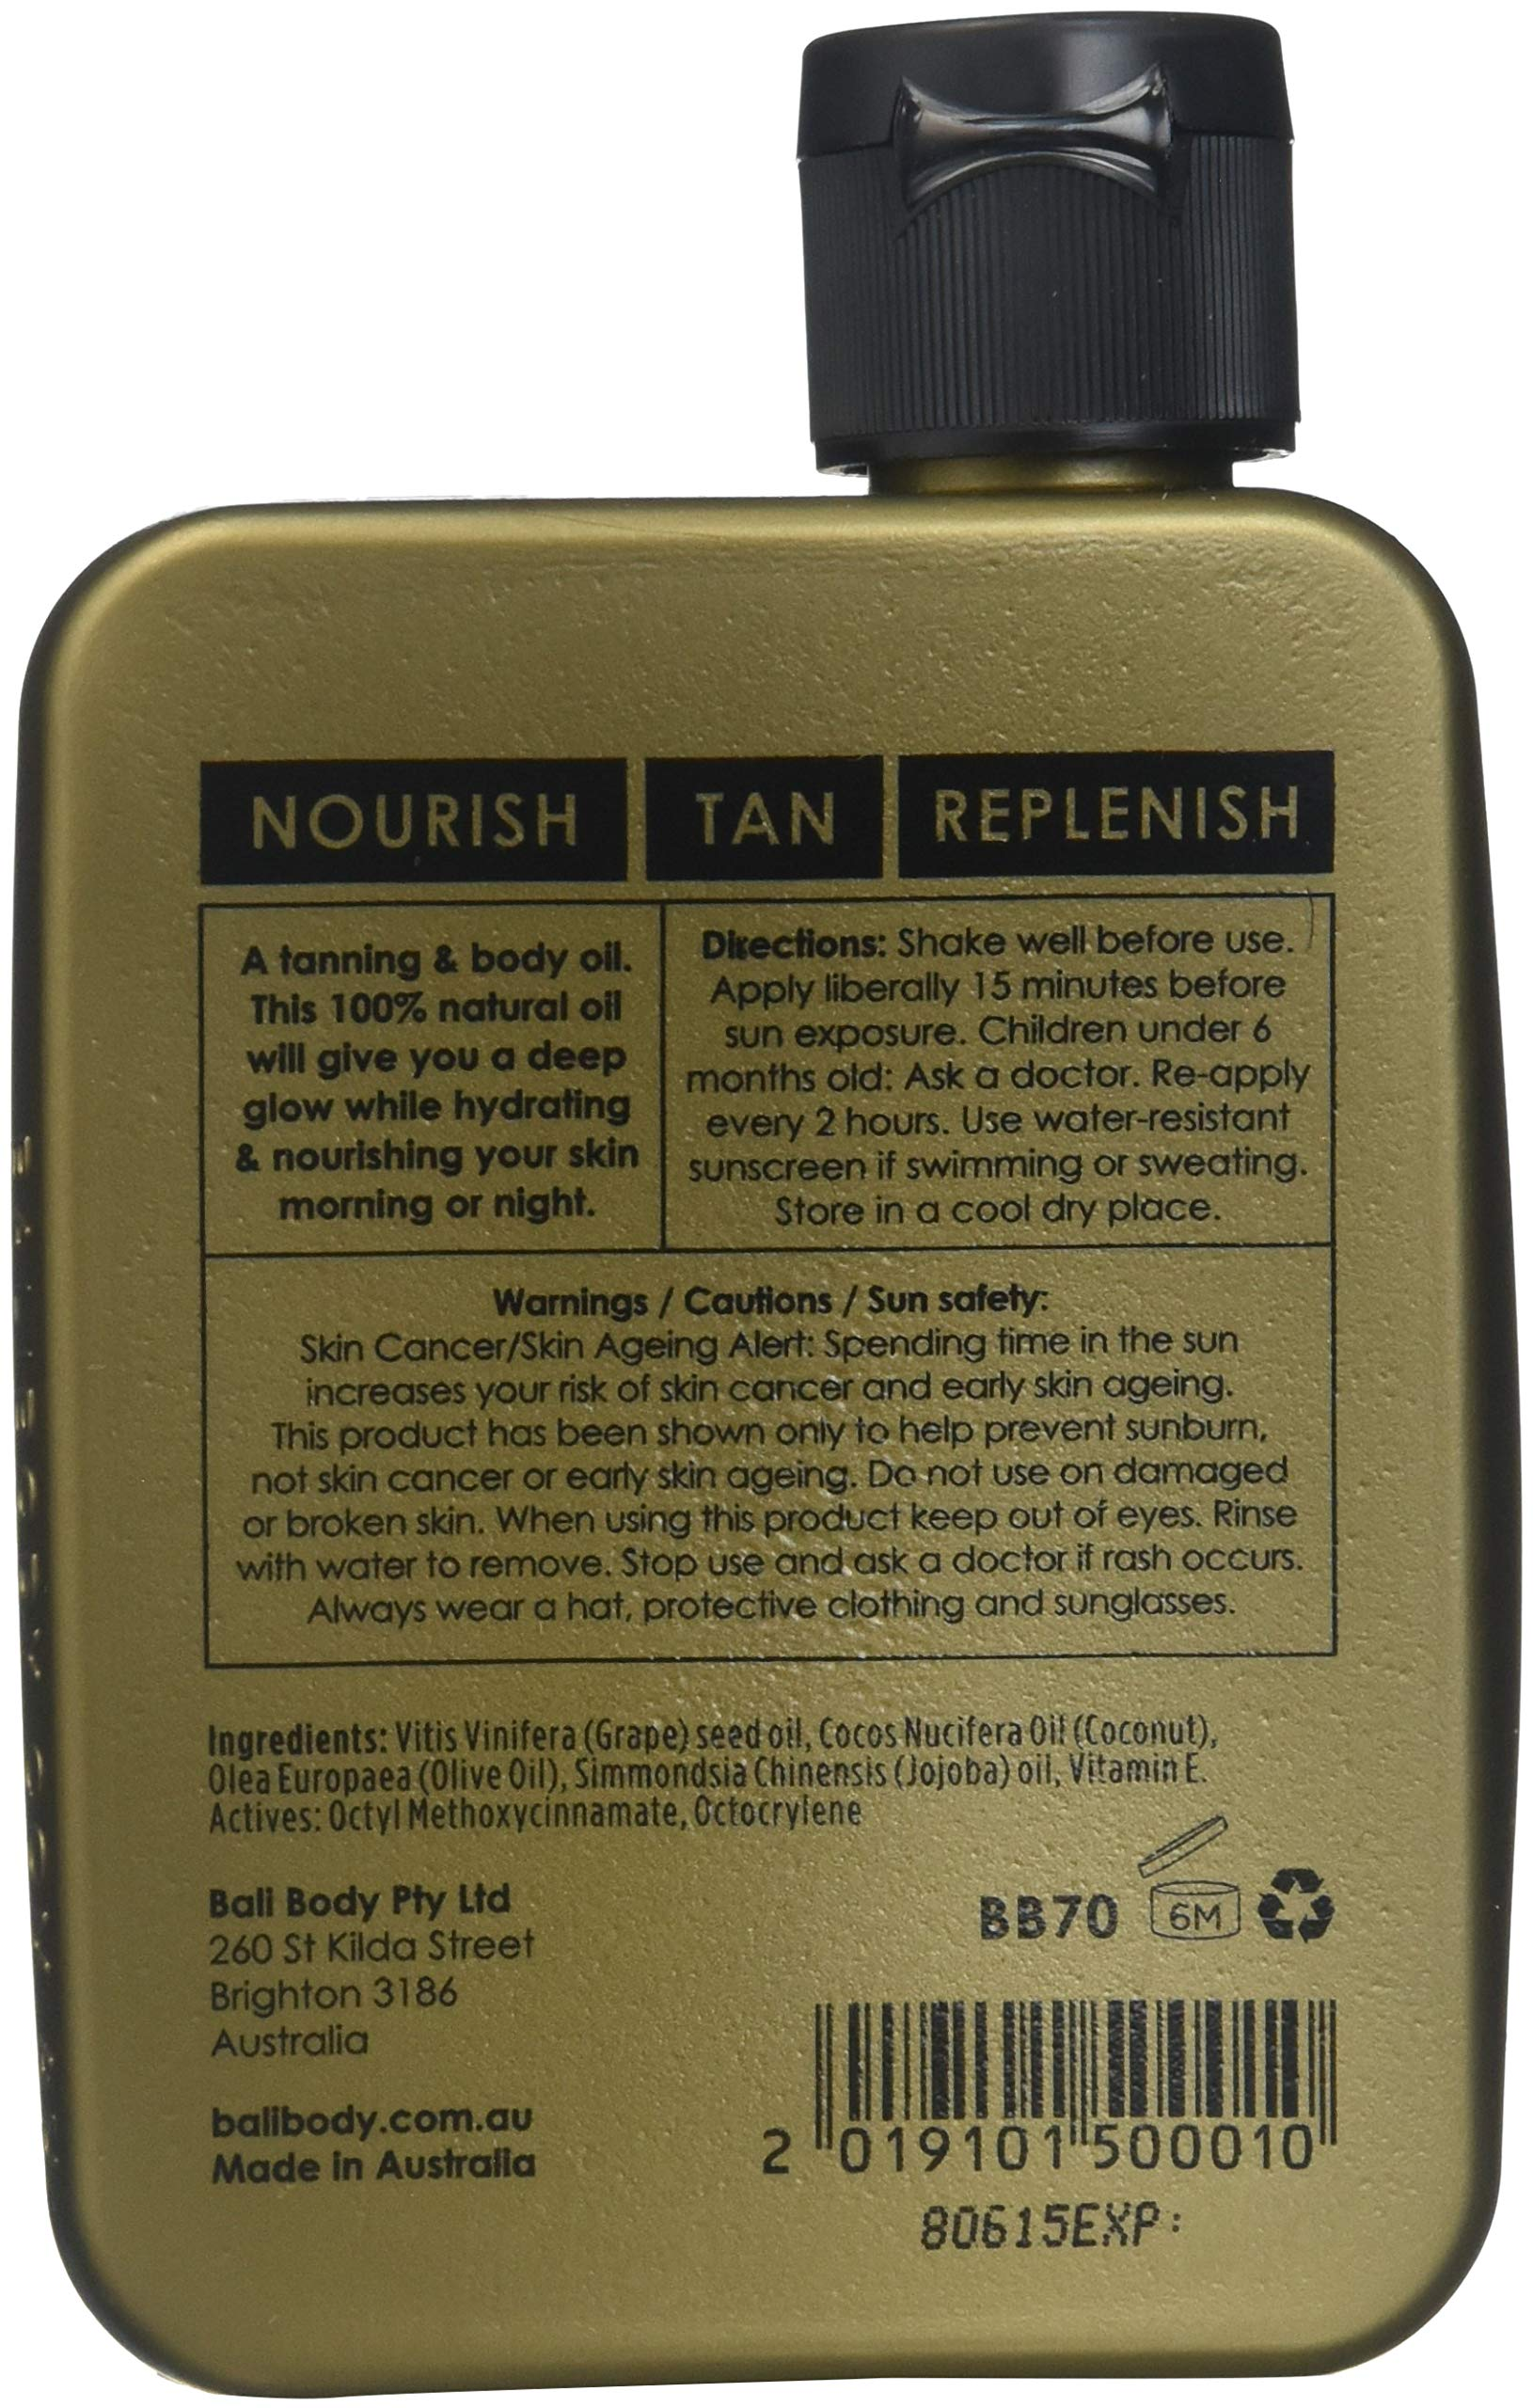 BALI BODY ORIGINAL NATURAL TANNING AND BODY OIL 110 ml by Bali Designs (Image #2)